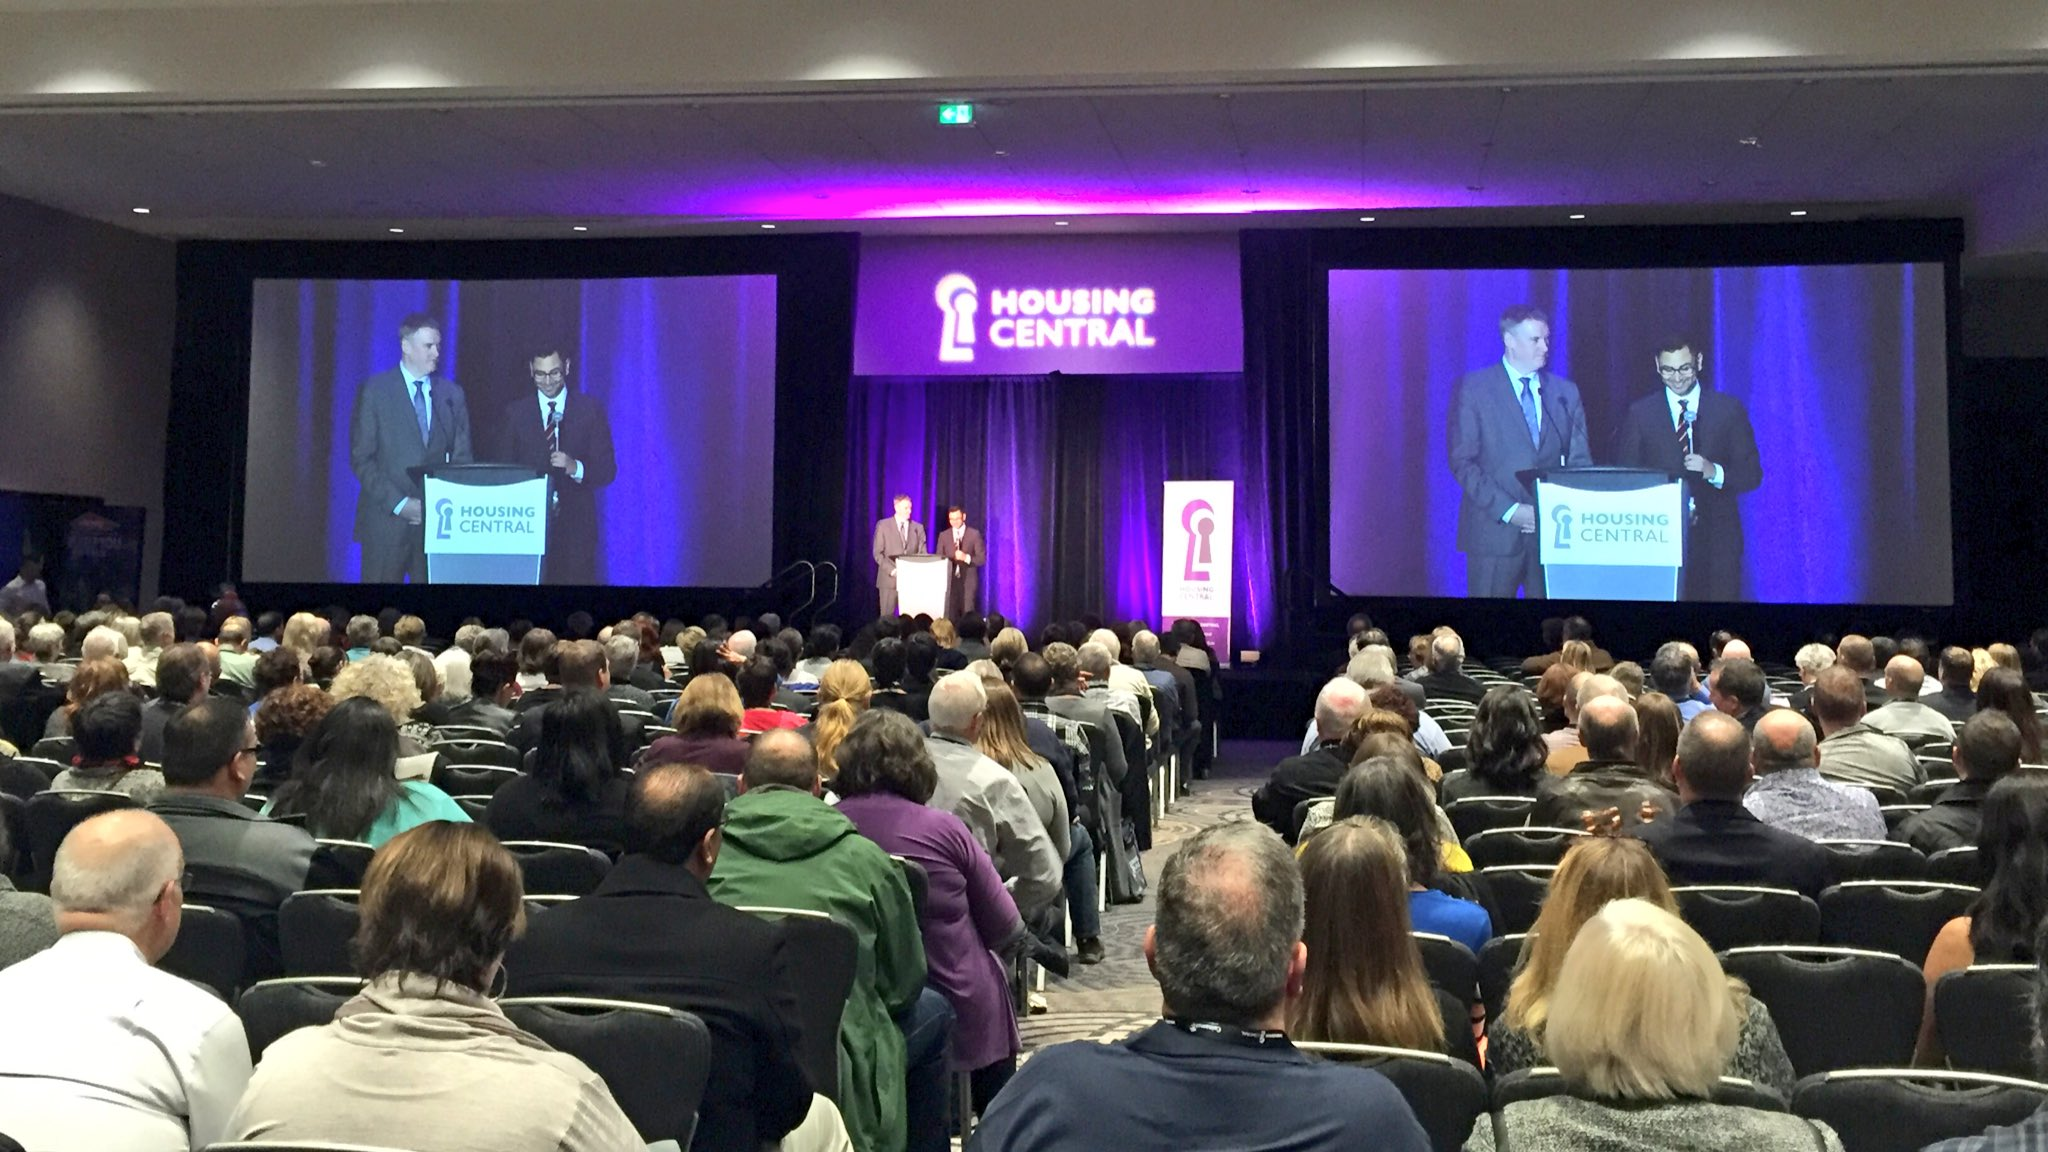 ED Thom Armstrong & @BCNPHA CEO @kishoneroy on a shared mission for safe, secure #affordablehousing for all. #HousingCentral https://t.co/54lSr3B9m7